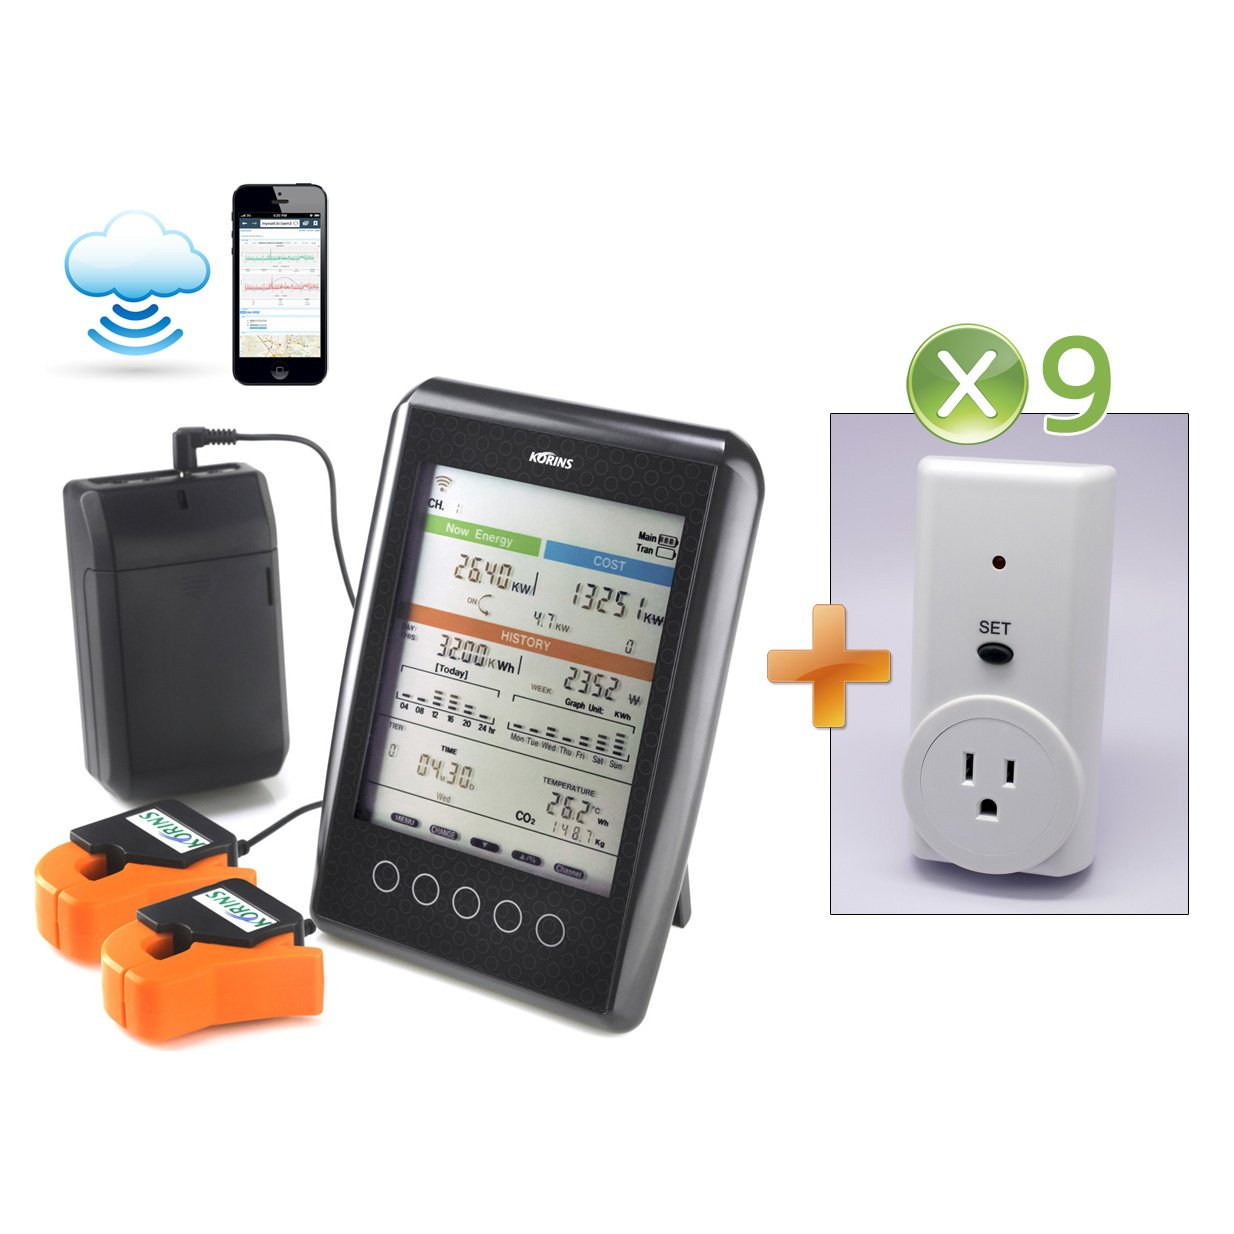 Korins MyWatt 10ch. Wireless Electricity Monitor with Cloud Service, SEM3110B9 for USA